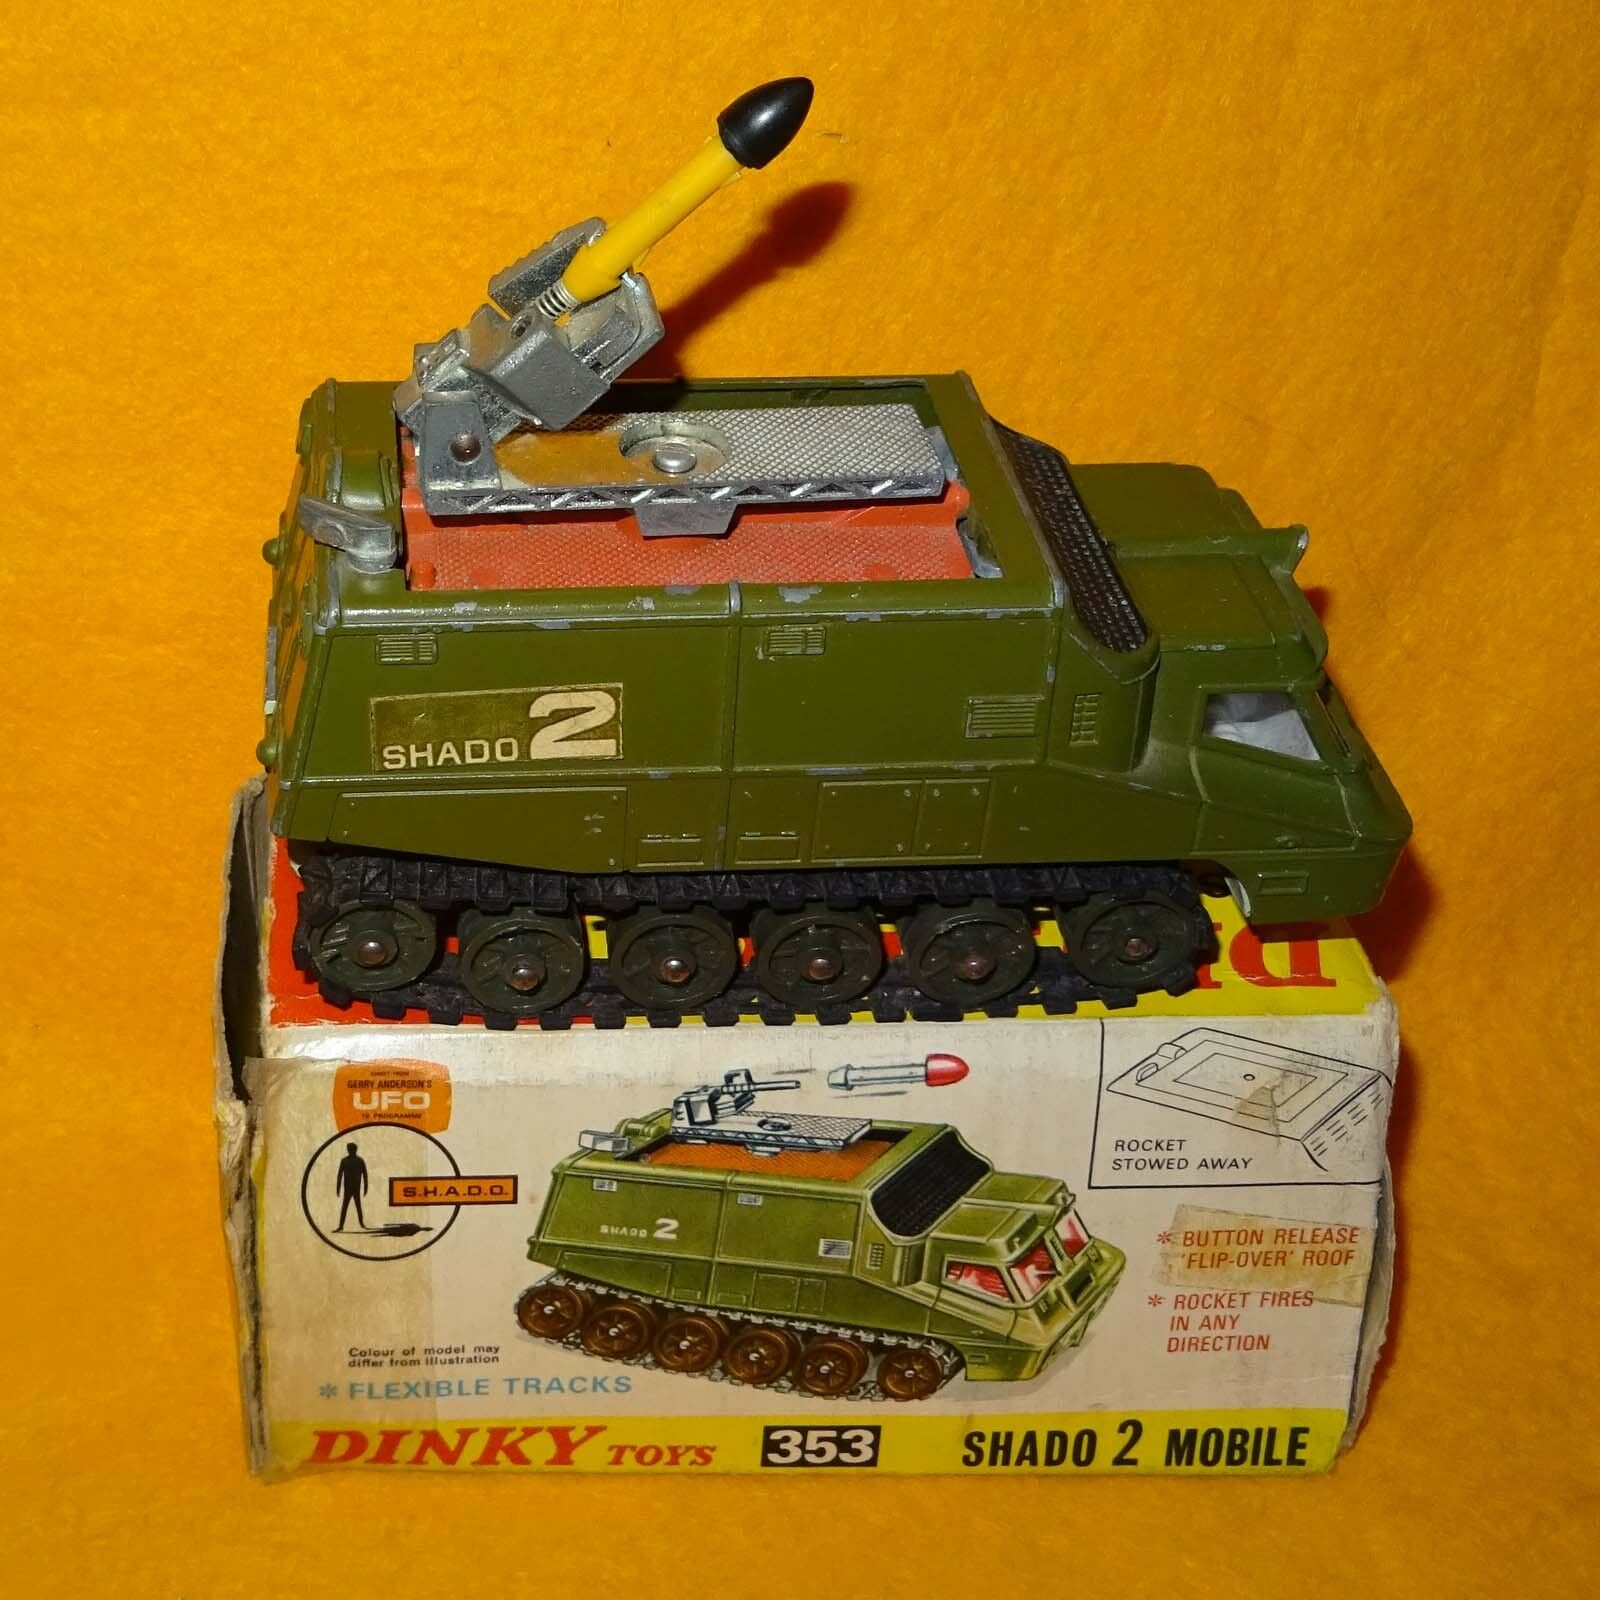 VINTAGE 70s DINKY TOYS 353 UFO SHADO 2 MOBILE SPACE VEHICLE COMPLETE BOXED RARE